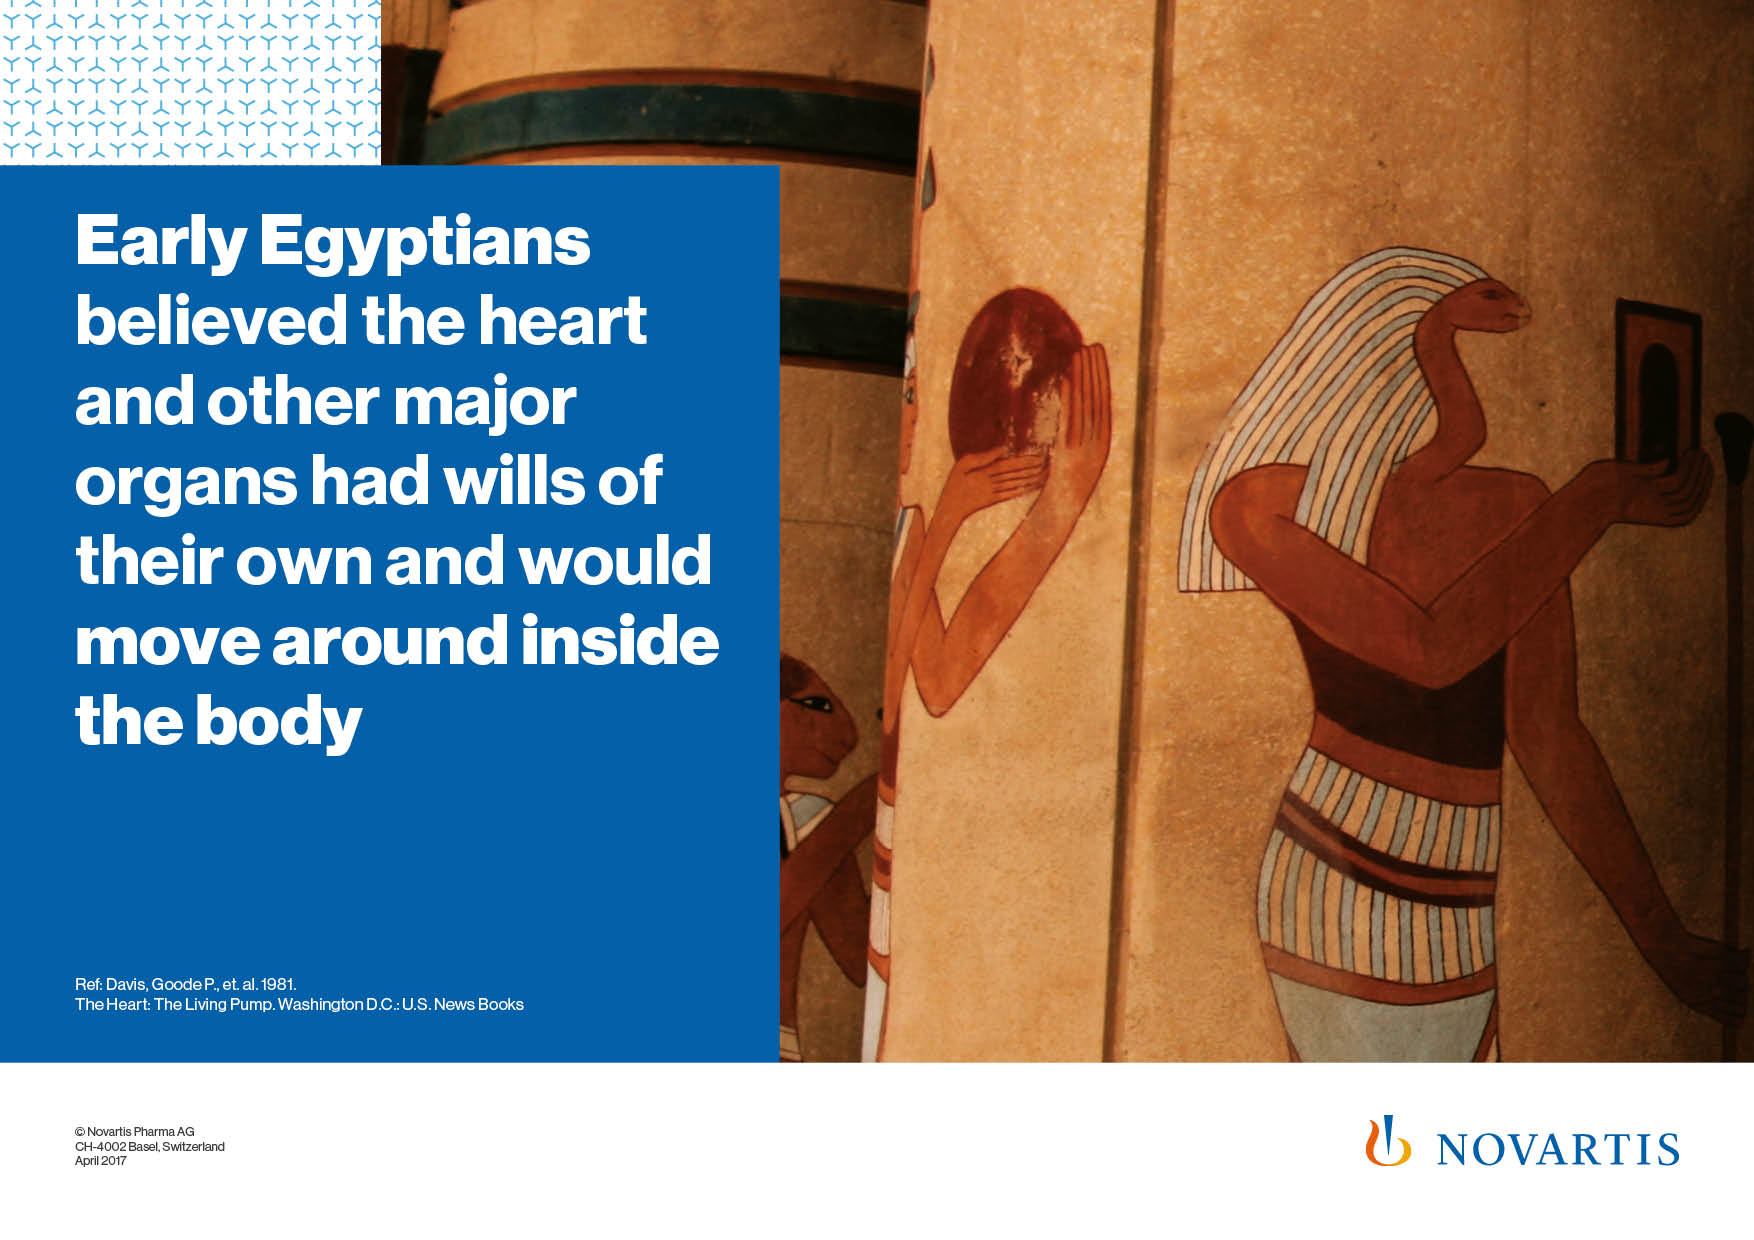 egyptians beliefs Ancient egyptian beliefs by julie richer, cyberkids founder read this article before trying the pyramid crossword puzzle scholars have learned about the religious beliefs of ancient egyptians in a variety of ways.